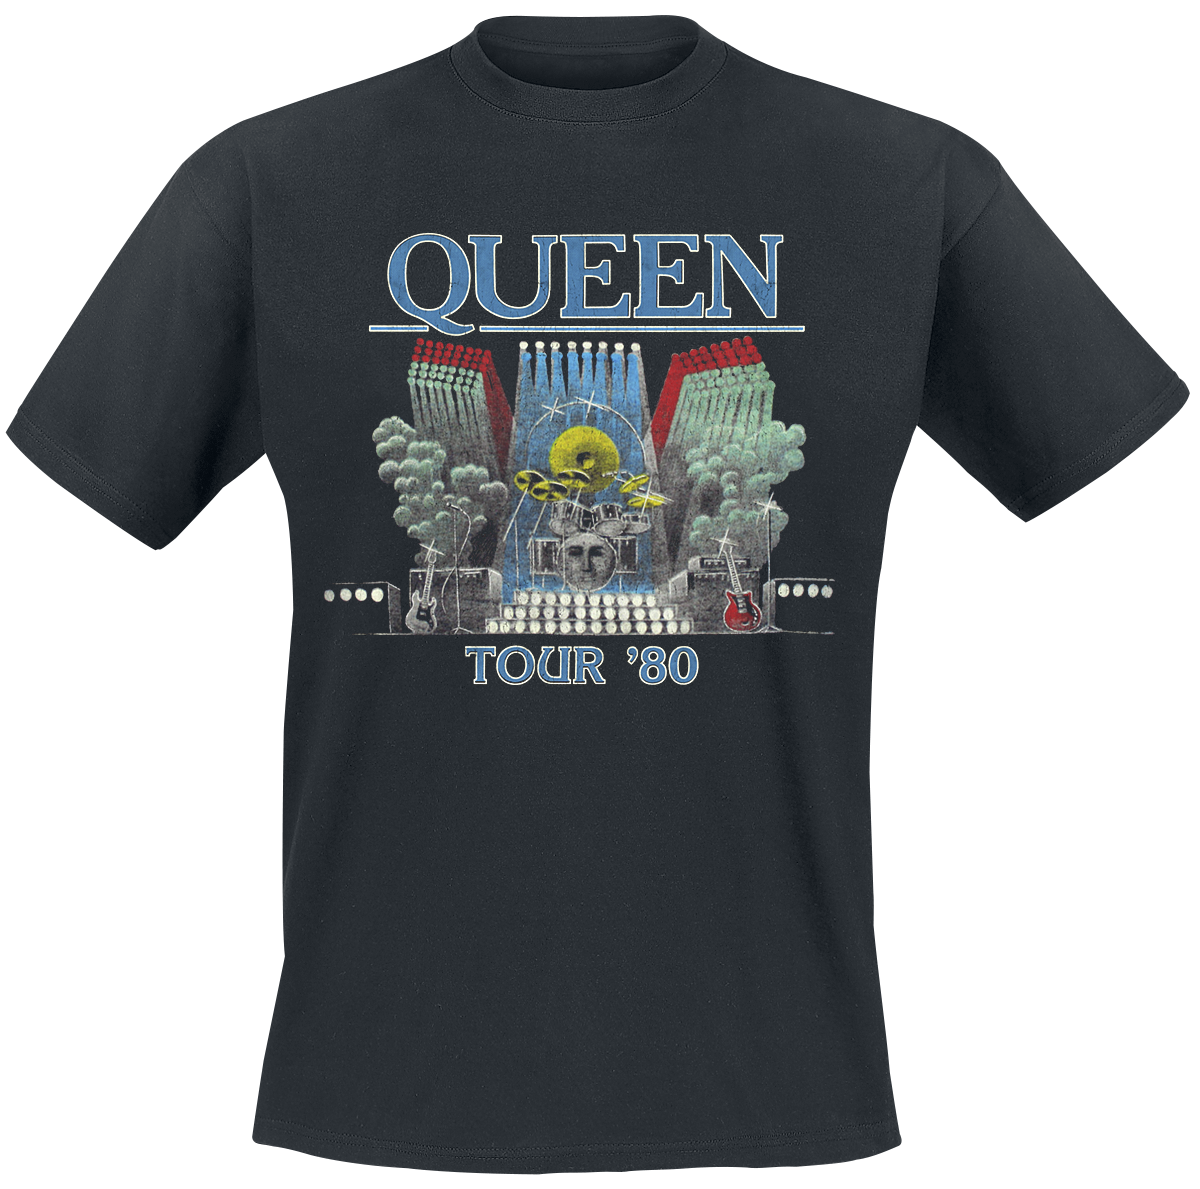 Queen - Tour '80 - T-Shirt - schwarz